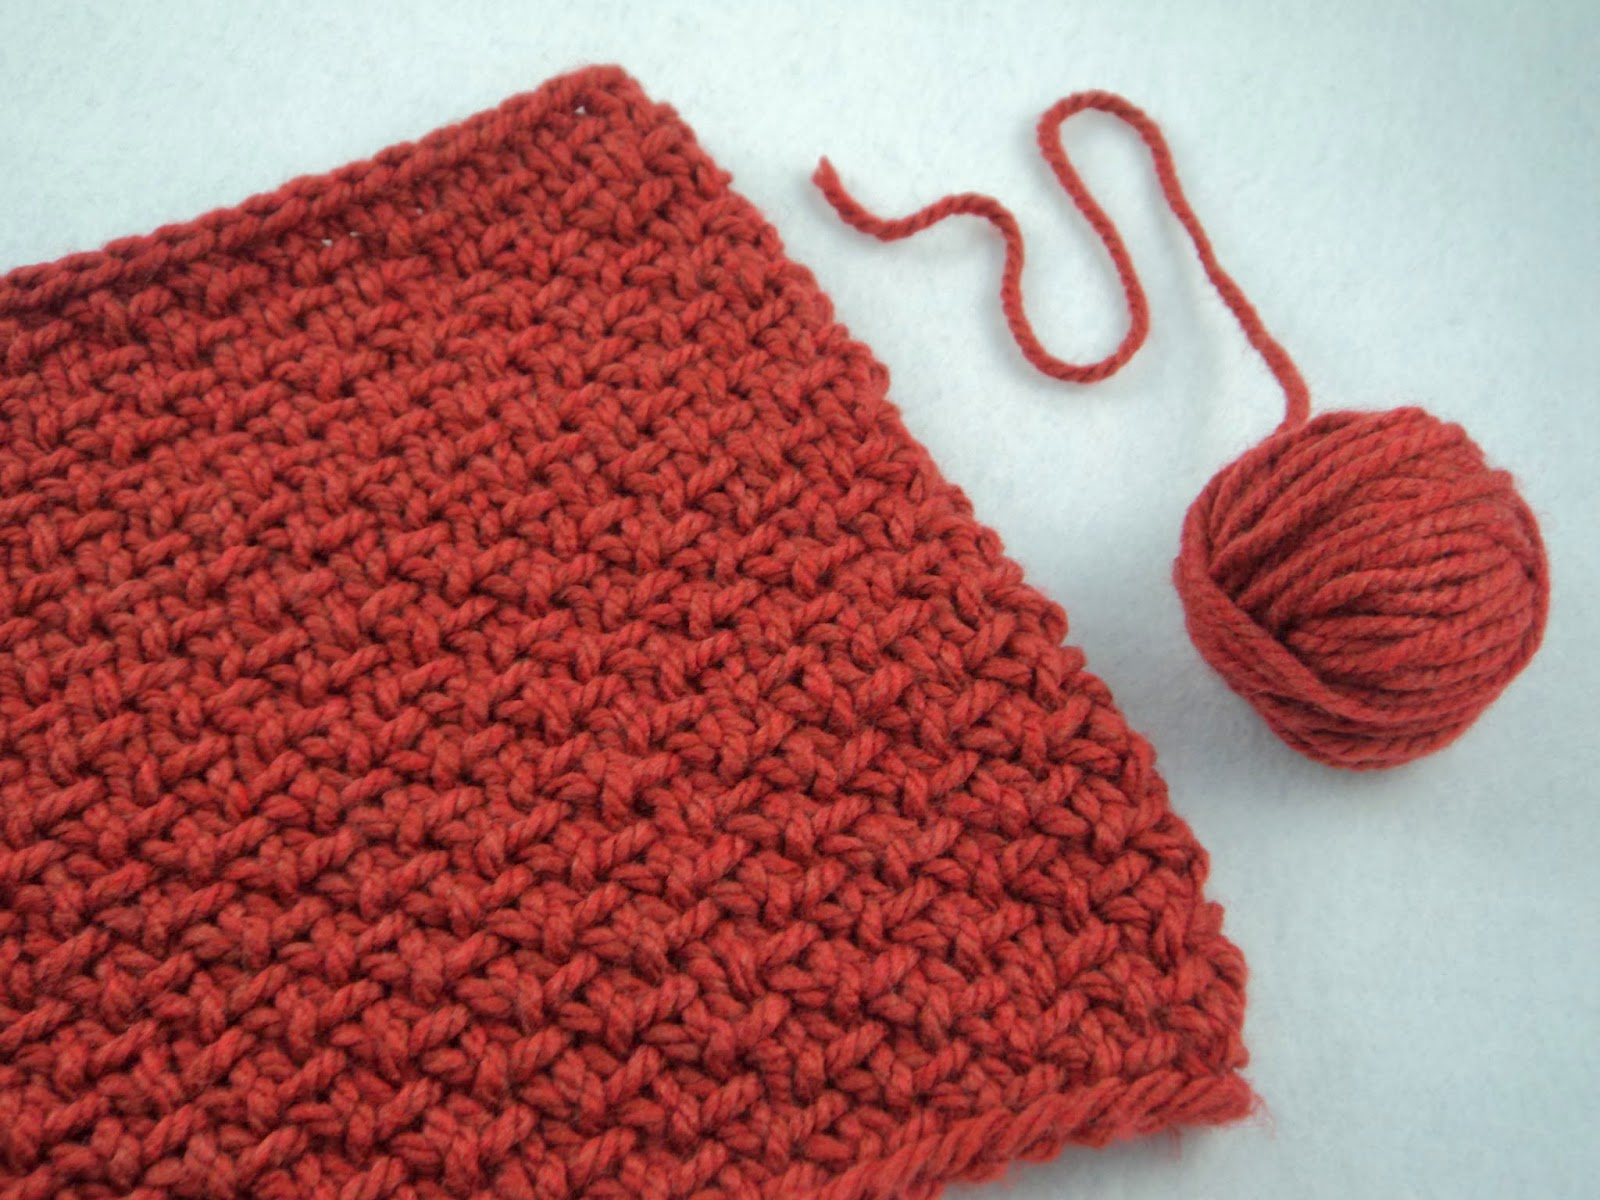 Knitted Neck Warmer Pattern : moniqueraedesigns: 4 Chunky Neck Warmers Textured Knit Pattern Now Available!